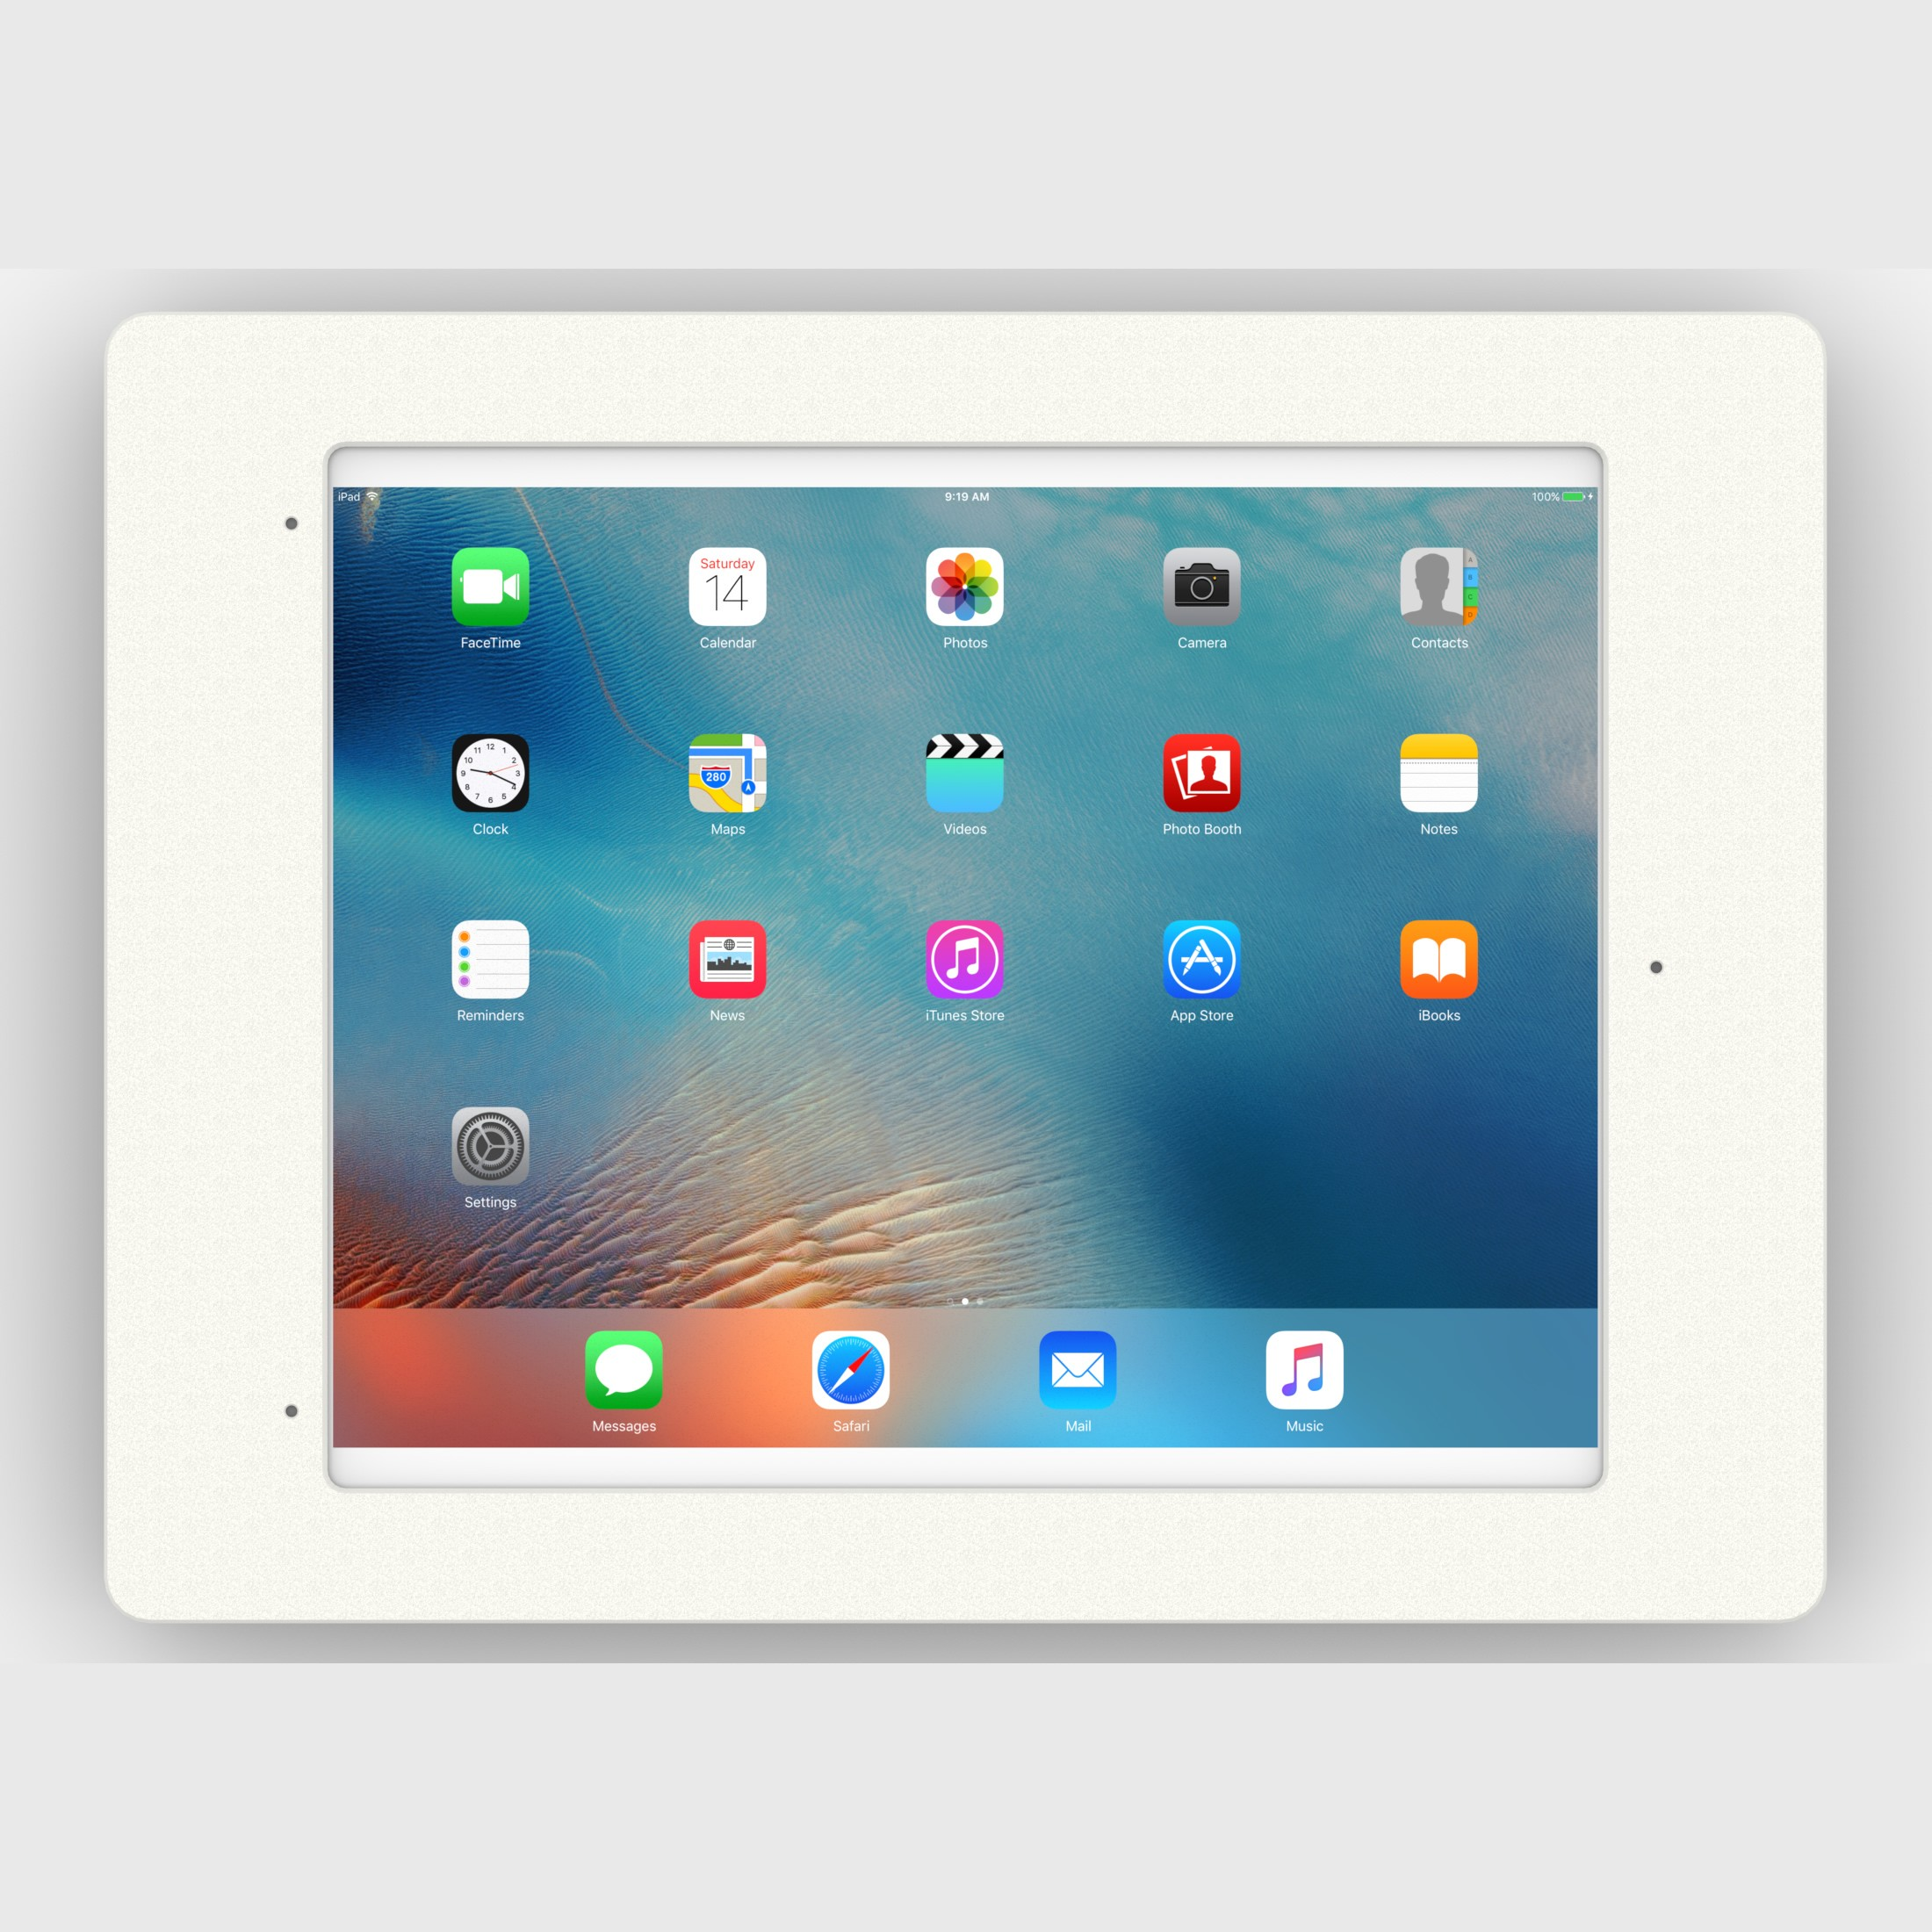 Fixed Slim Wall 12 9 Inch Ipad Pro Home Button Covered